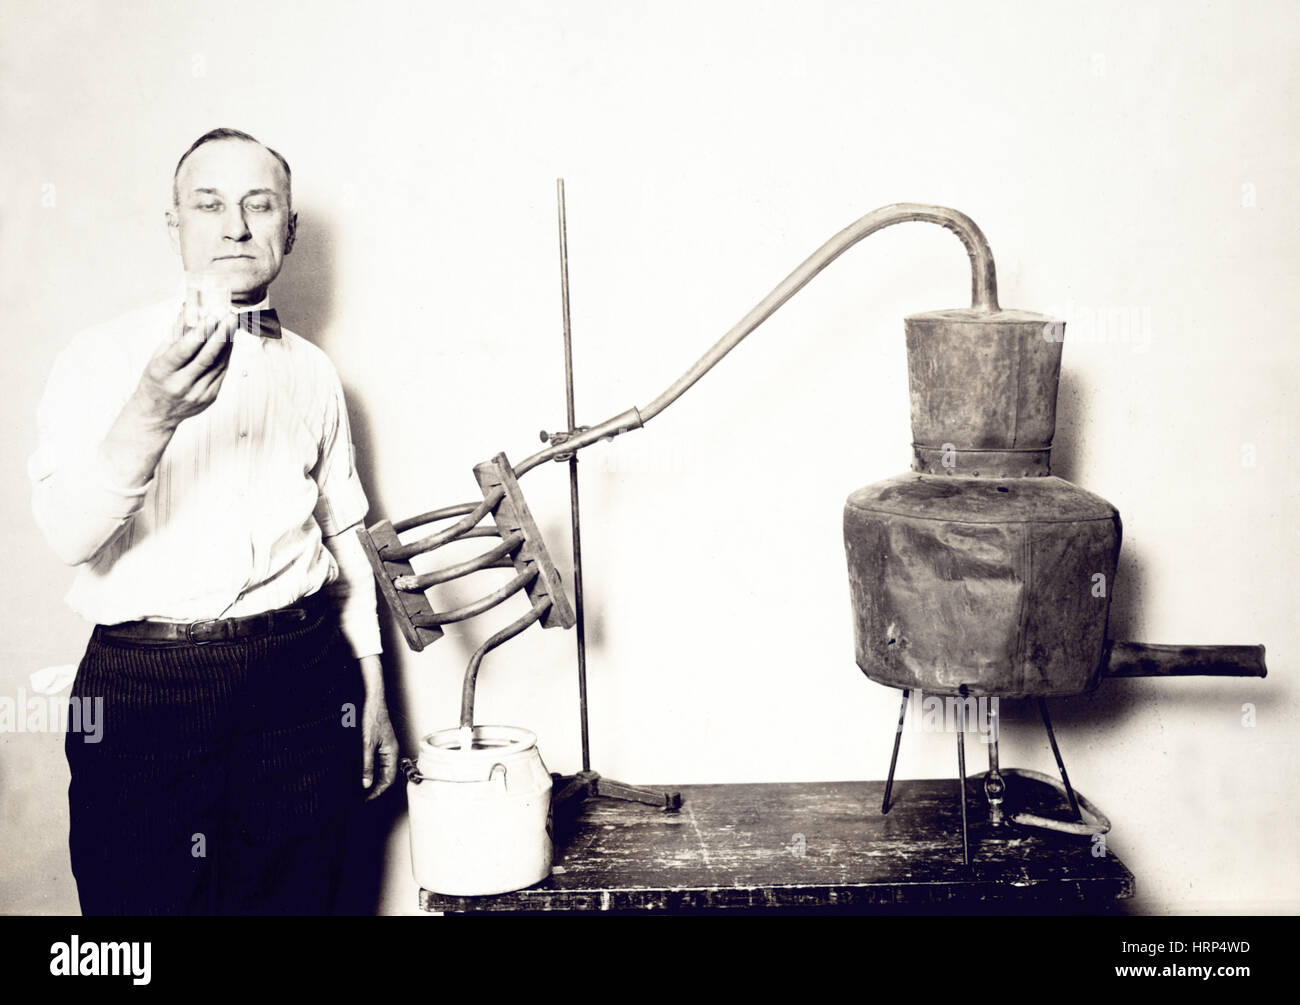 Confiscated Moonshine Still, 1920s - Stock Image